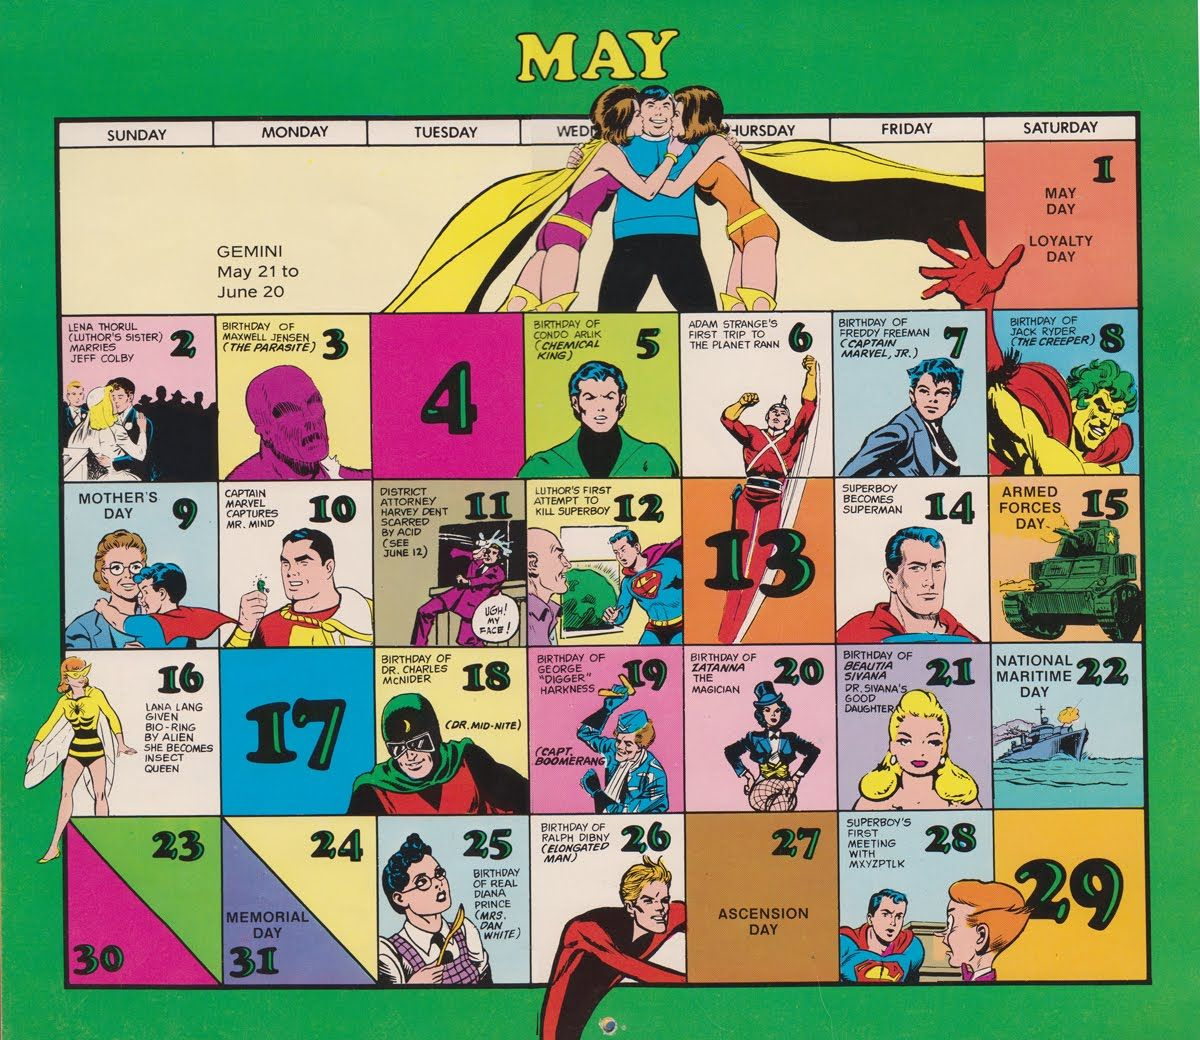 Free Comic Book Day May 2018: Pin By Amanda Howard On On This Day